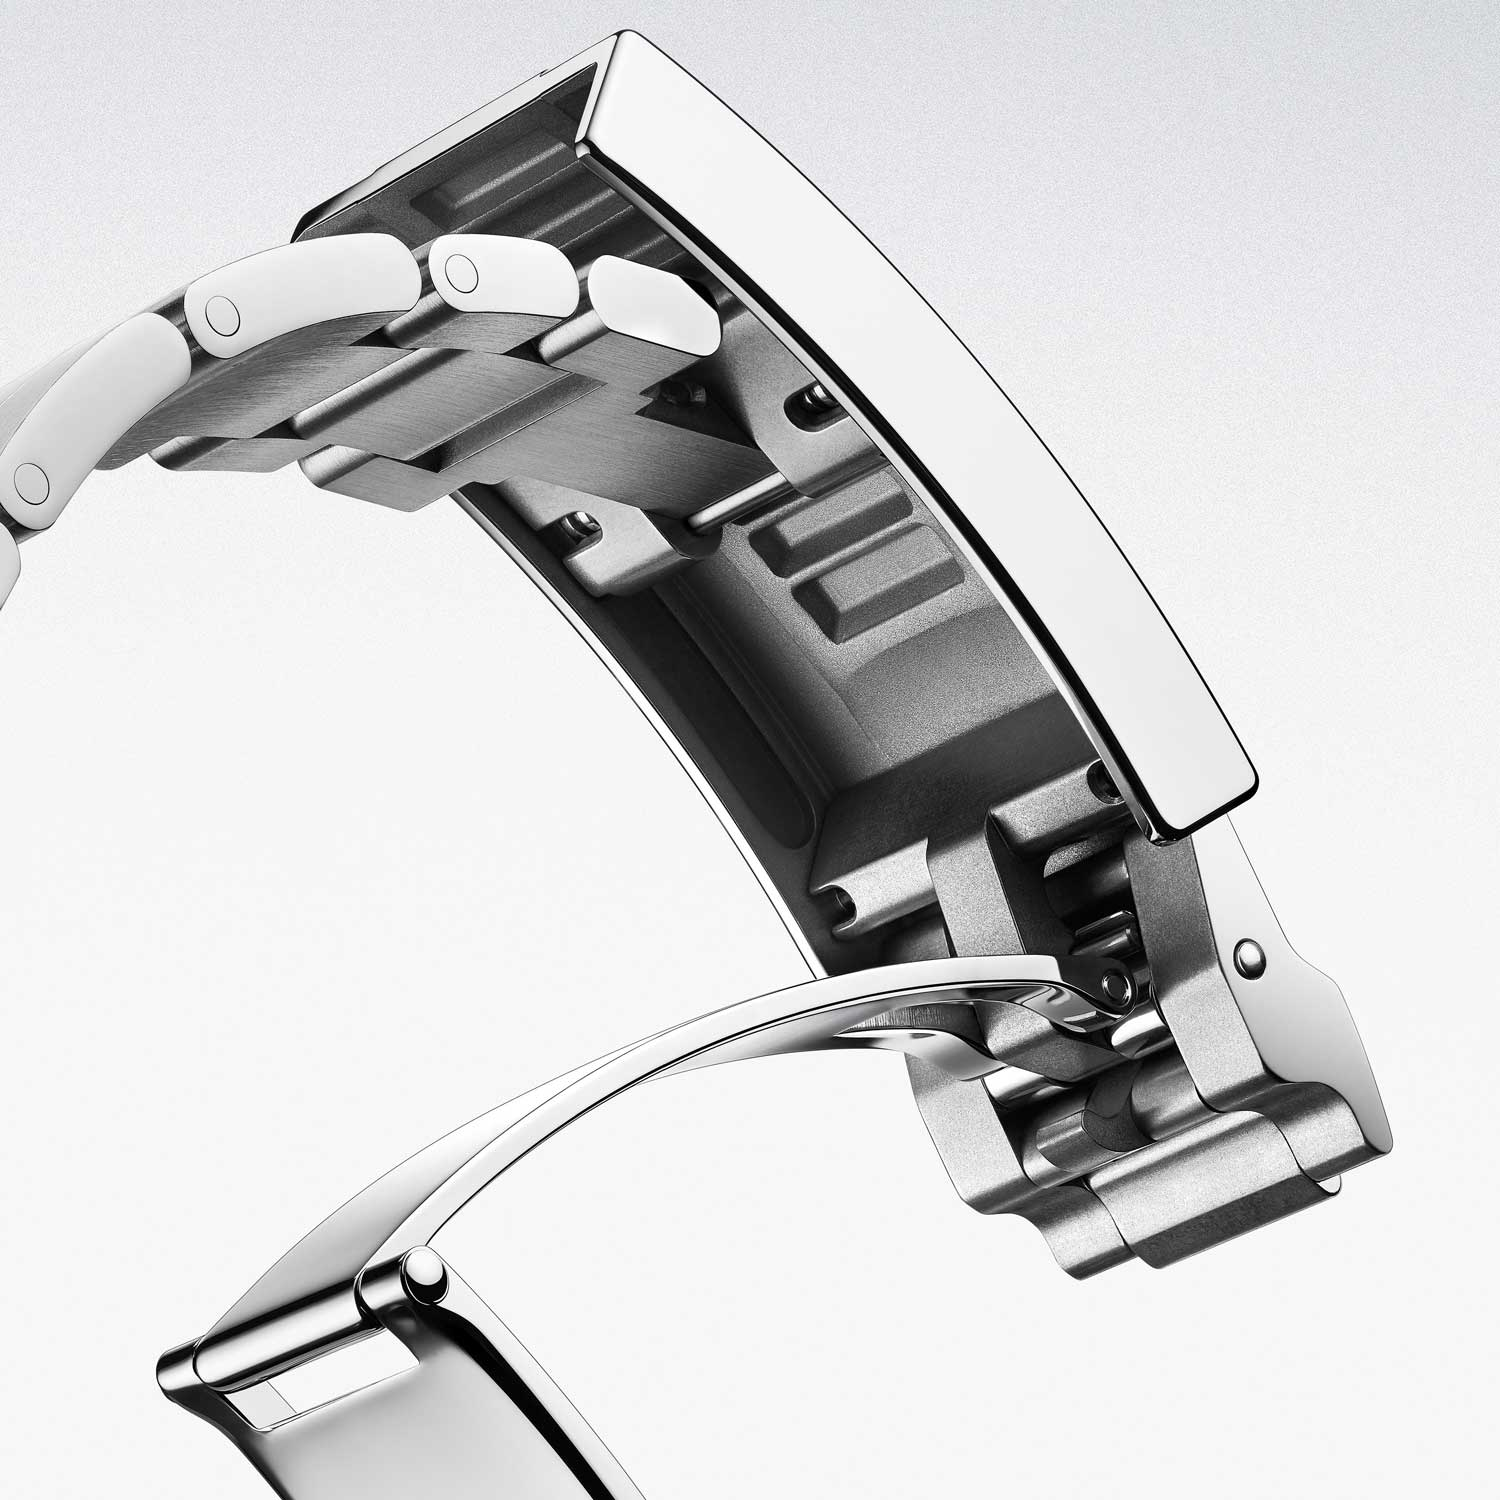 The Glidelock extension system found on the bracelet of the 2020 Oyster Perpetual Submariner